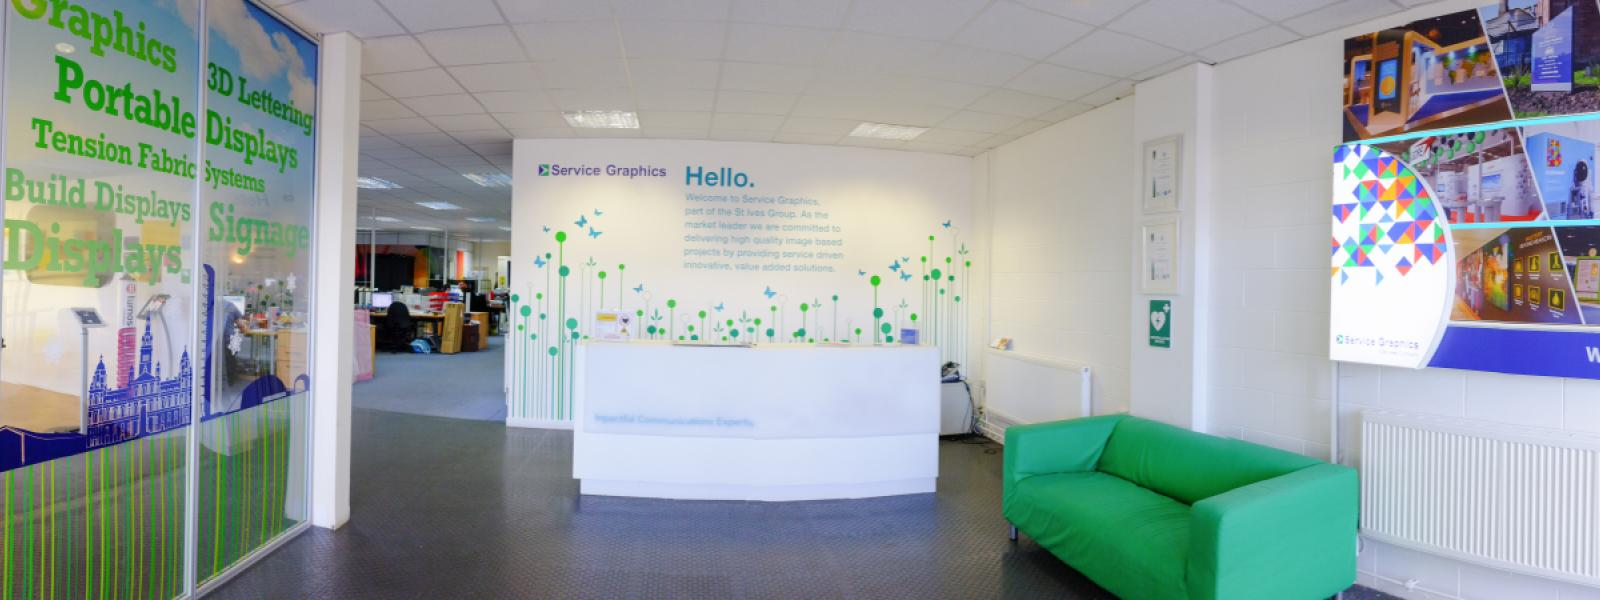 service_graphics_glasgow_reception